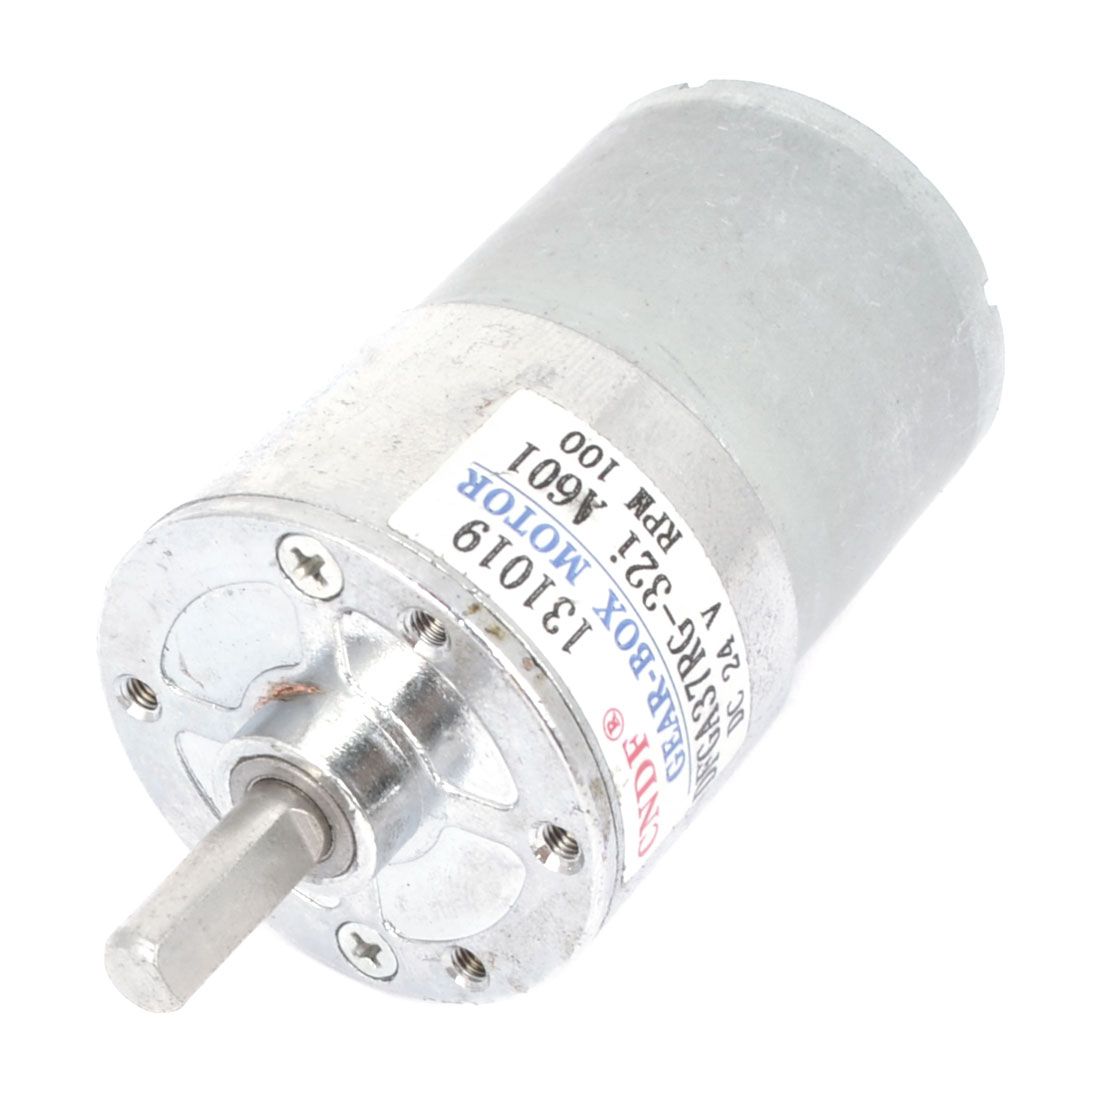 Silver Tone Metal DC 24V 100RPM Rotation Output Speed Motor